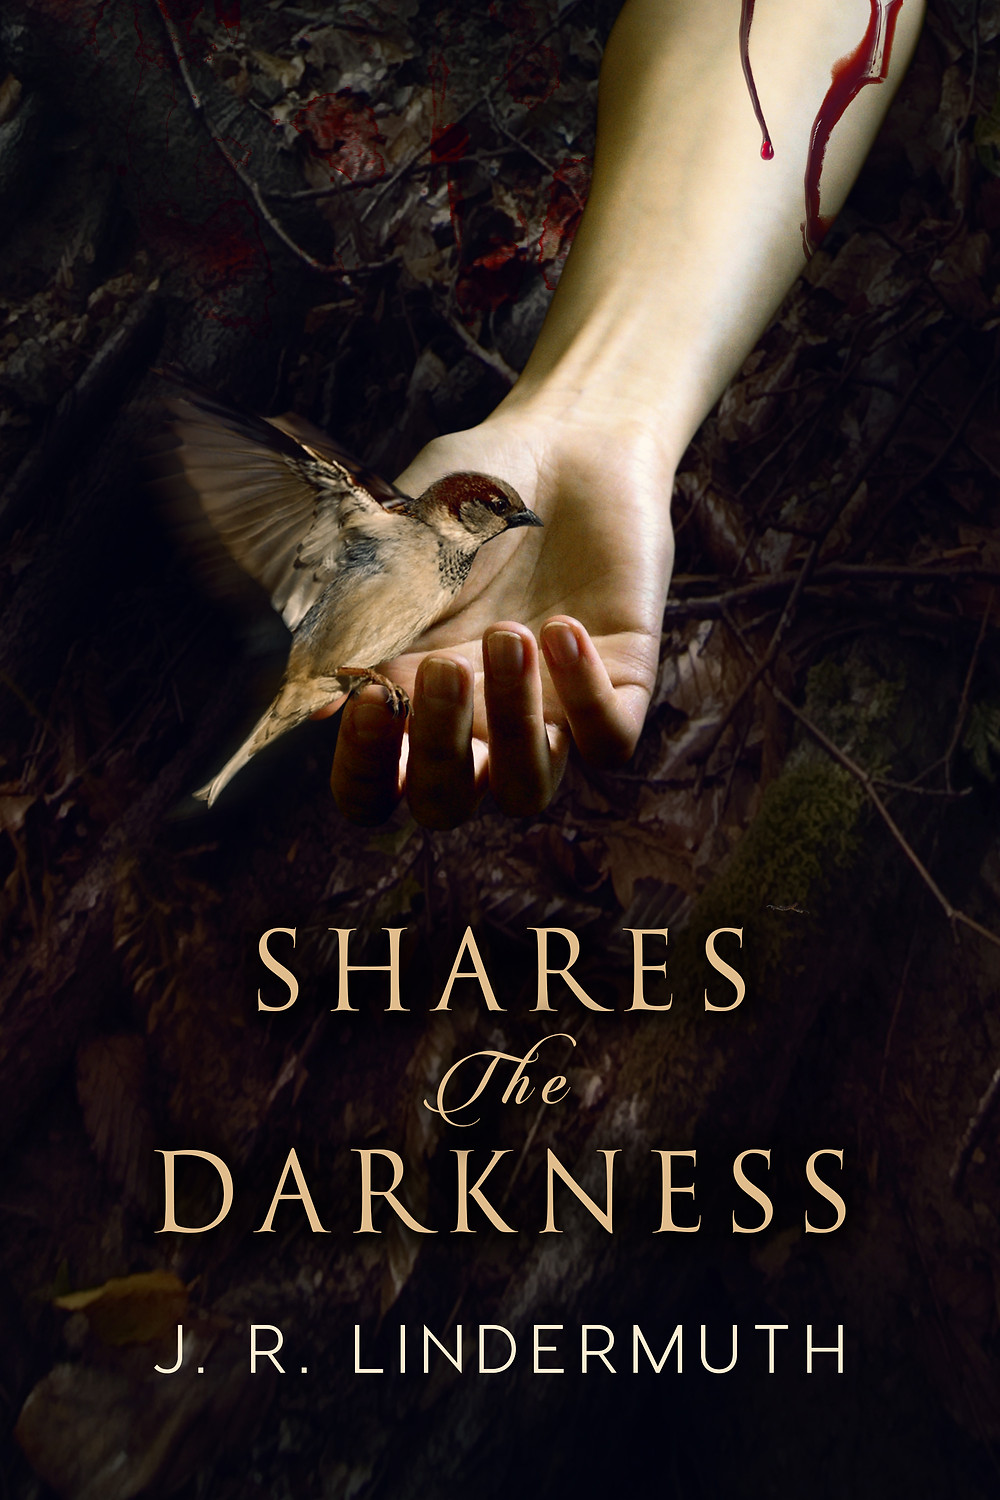 SHARES THE DARKNESS by J.R. Lindermuth